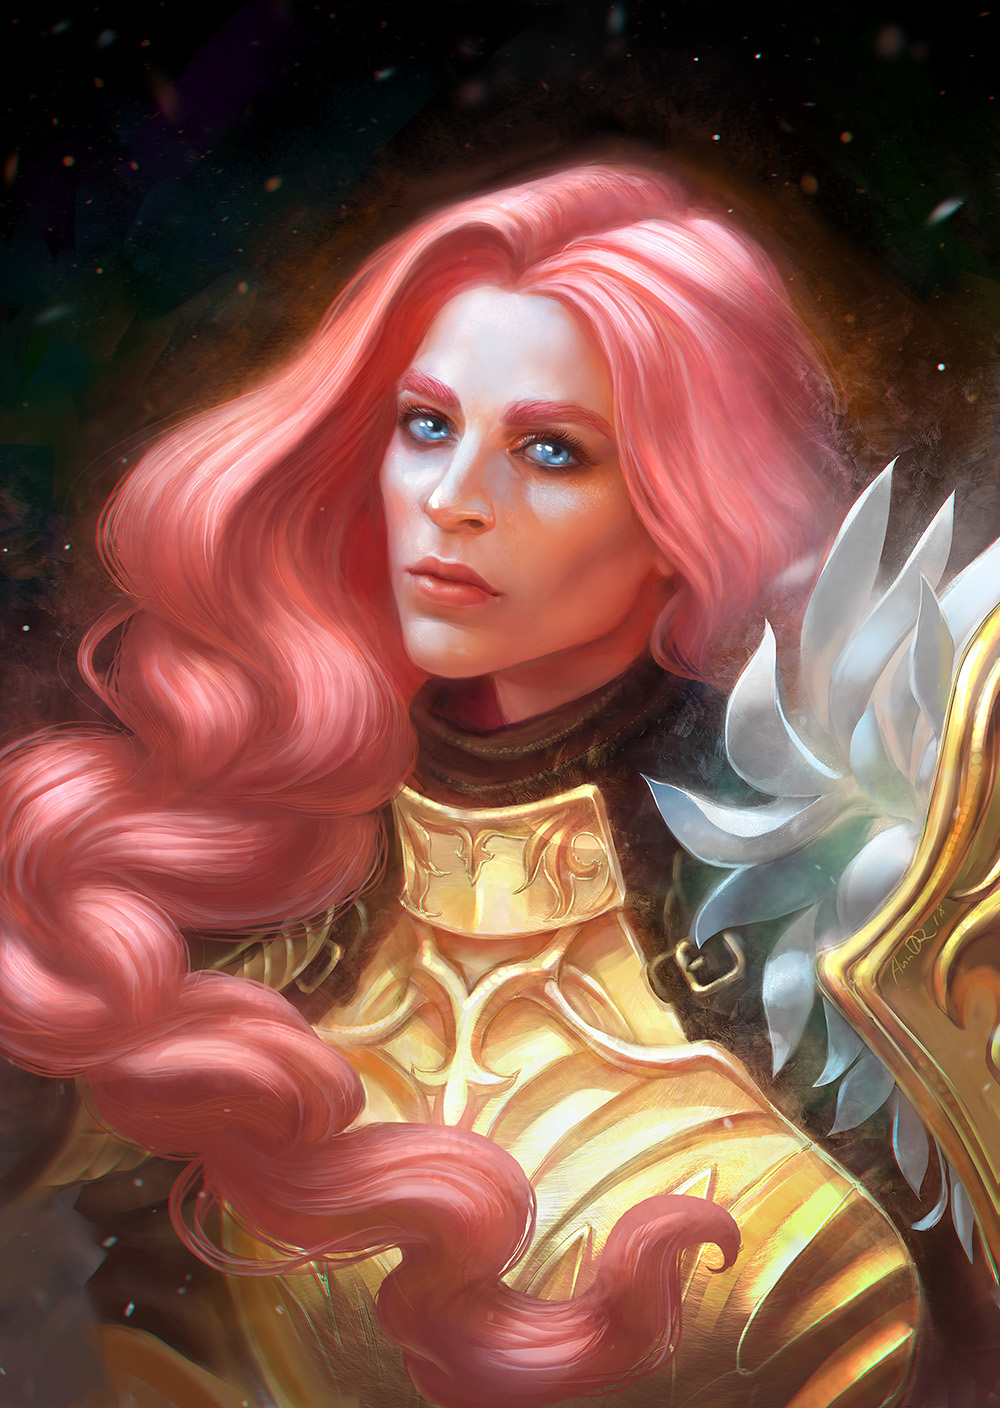 15 fantasy digital art valkyrie anndr kusuriuri